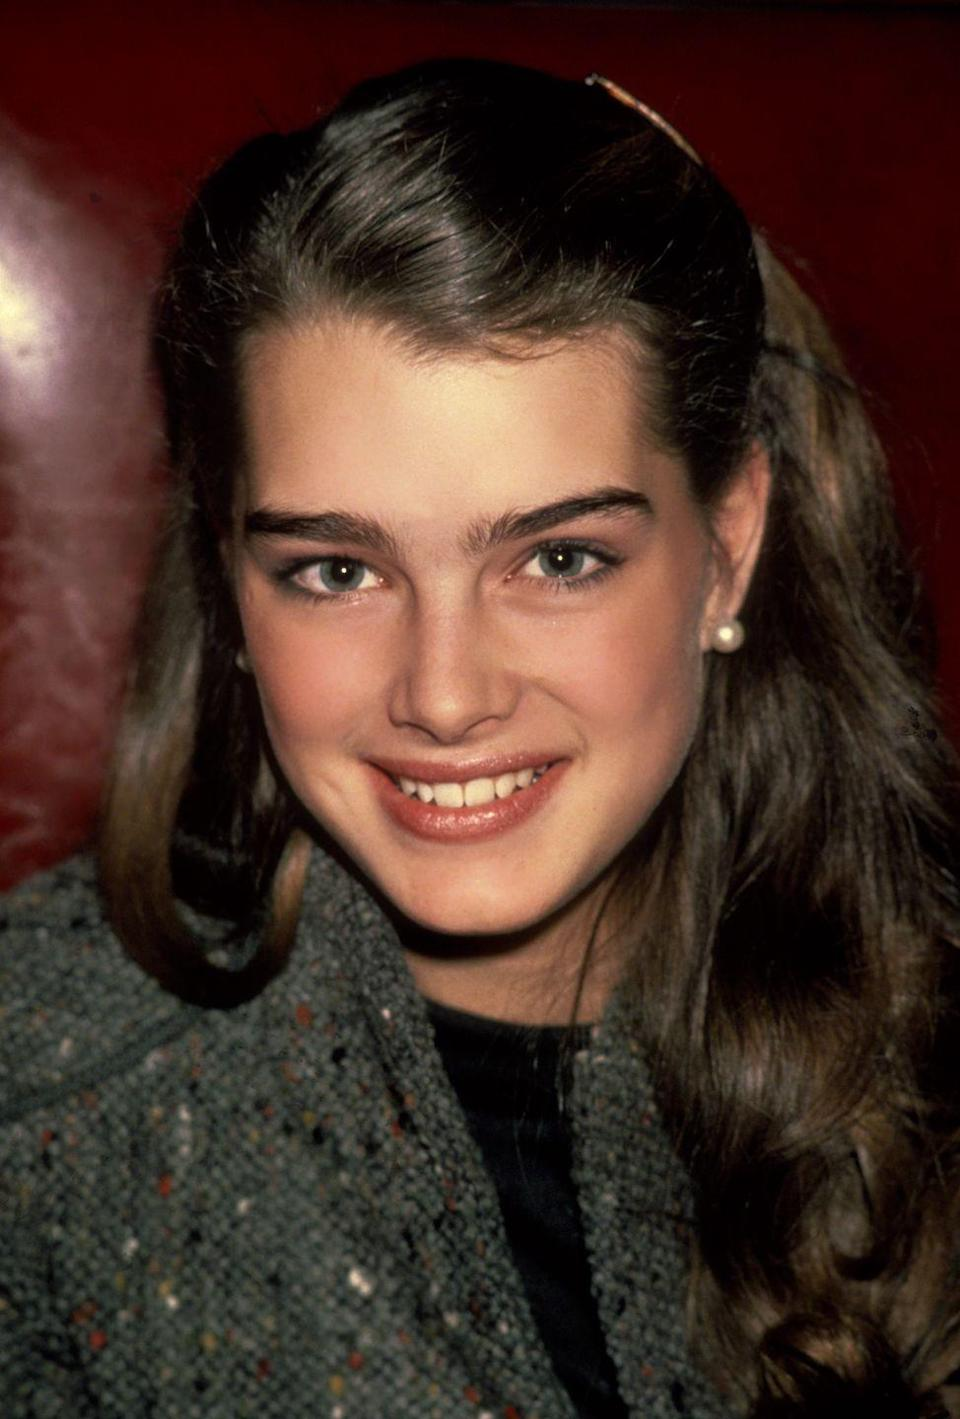 """<p><a href=""""https://www.goodhousekeeping.com/life/a19606665/brooke-shields-bikini/"""" rel=""""nofollow noopener"""" target=""""_blank"""" data-ylk=""""slk:Brooke's"""" class=""""link rapid-noclick-resp"""">Brooke's</a> first role was in an Ivory soap commercial, but she shook up the world as a child prostitute in the movie <em>Pretty Baby. </em> She went on to star in the popular teen romances <em><a href=""""https://www.amazon.com/dp/B001OD8MX4?tag=syn-yahoo-20&ascsubtag=%5Bartid%7C10050.g.24736857%5Bsrc%7Cyahoo-us"""" rel=""""nofollow noopener"""" target=""""_blank"""" data-ylk=""""slk:The Blue Lagoon"""" class=""""link rapid-noclick-resp"""">The Blue Lagoon</a> </em>and <em><a href=""""https://www.amazon.com/Endless-Love-Brooke-Shields/dp/B00AFPCACG?tag=syn-yahoo-20&ascsubtag=%5Bartid%7C10050.g.24736857%5Bsrc%7Cyahoo-us"""" rel=""""nofollow noopener"""" target=""""_blank"""" data-ylk=""""slk:Endless Love"""" class=""""link rapid-noclick-resp"""">Endless Love</a>. </em>She's had many adult roles, including her own hit TV series <em>Suddenly Susan </em>in the '90s. And, of course, nothing ever came between her and her Calvins. </p>"""